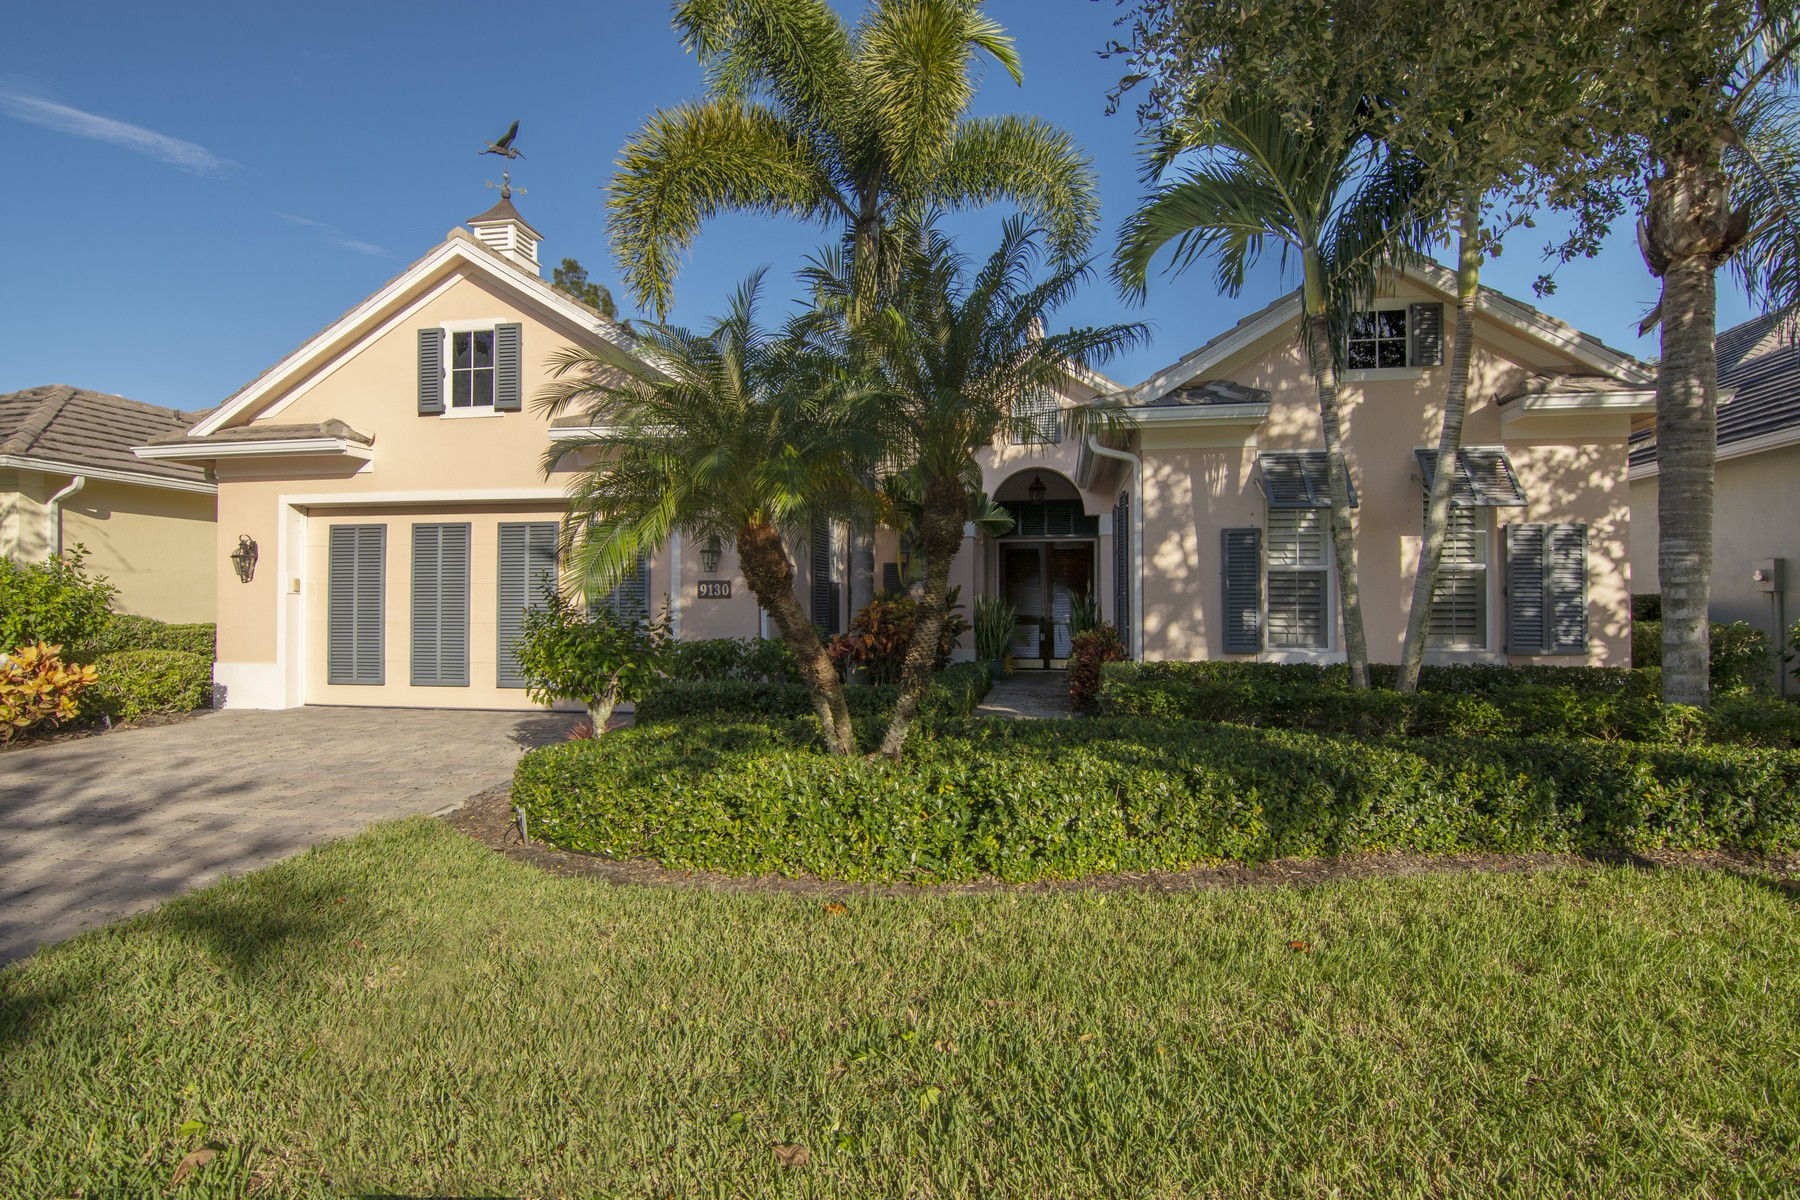 Single Family Home for Sale at EXCEEDING ALL EXPECTATIONS, AND WALK TO BEACH 9130 Spring Time Drive Vero Beach, Florida 32963 United States